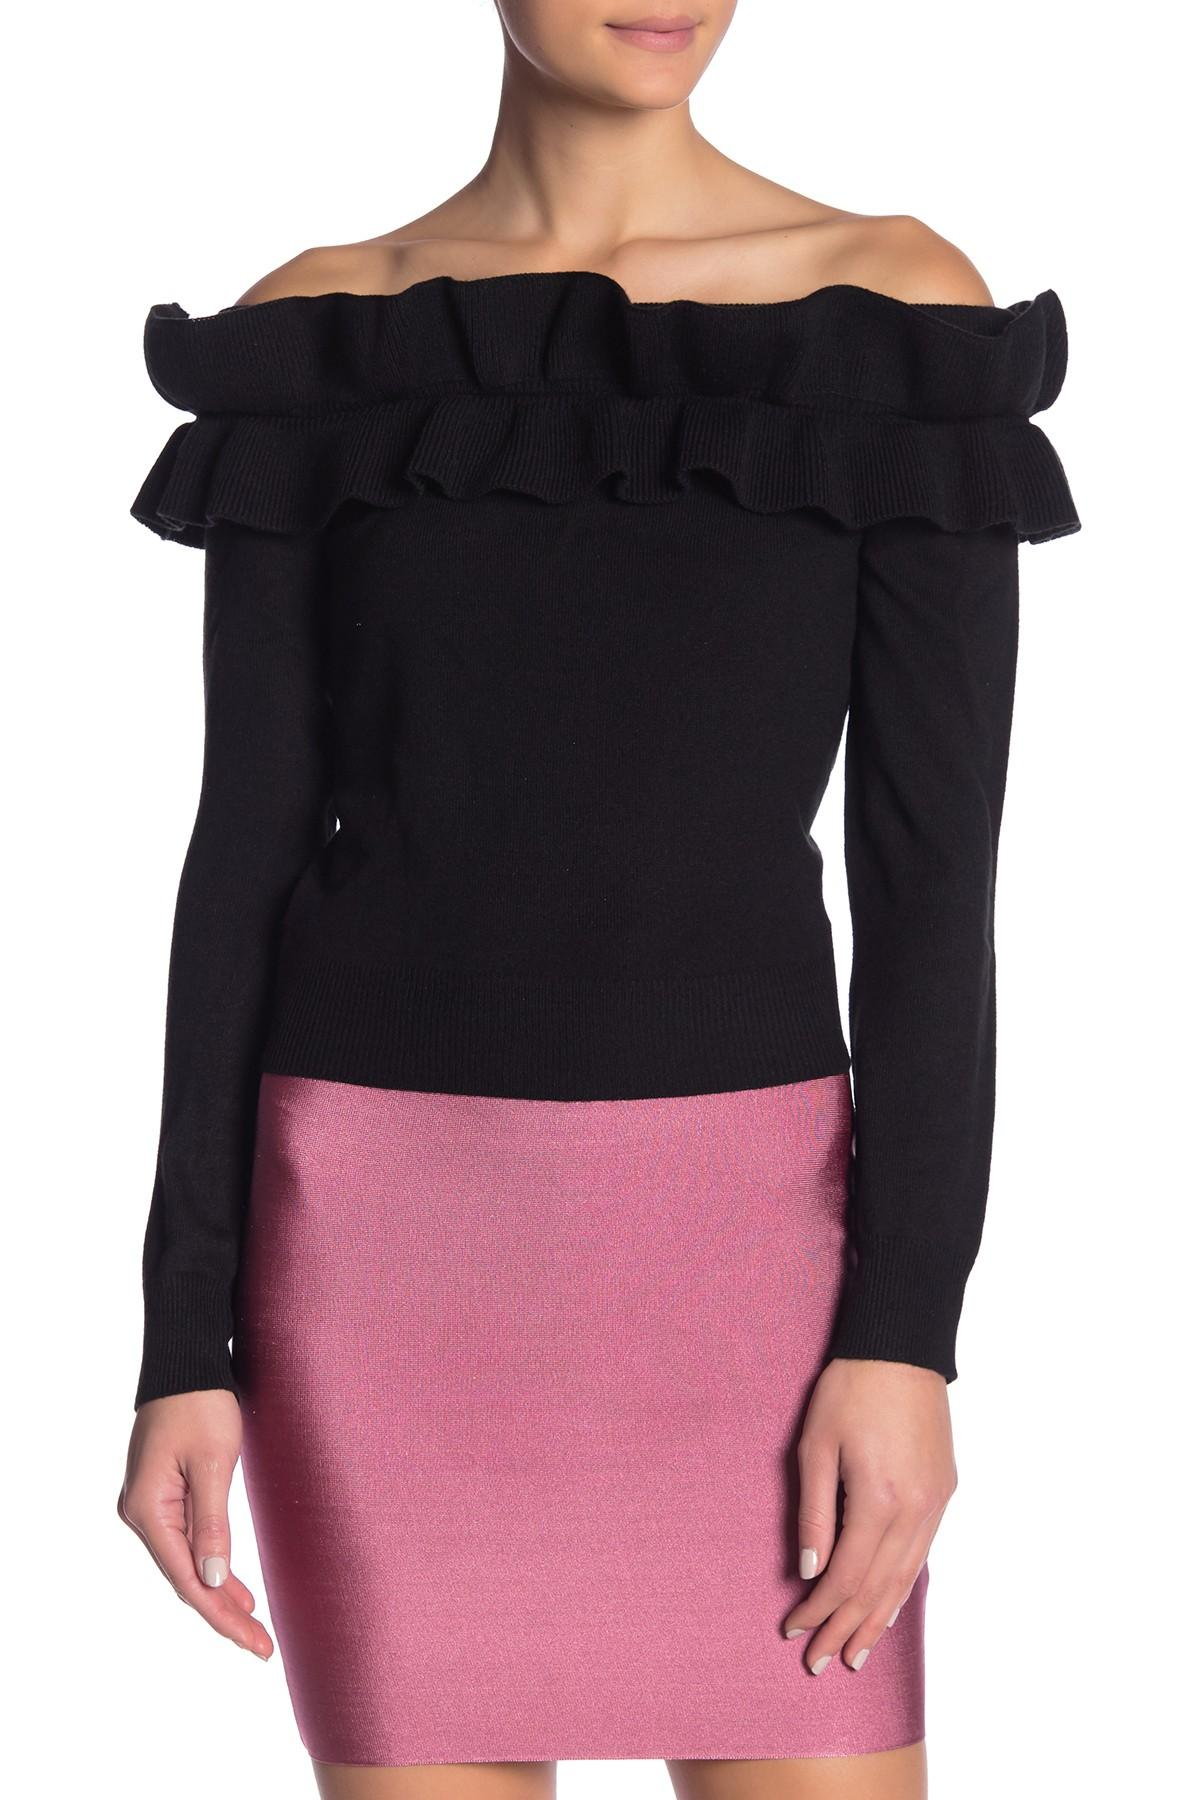 93fb27c8a Wow Couture. Women's Black Natalie Peplum Off Shoulder Top. $53 $30 From Nordstrom  Rack